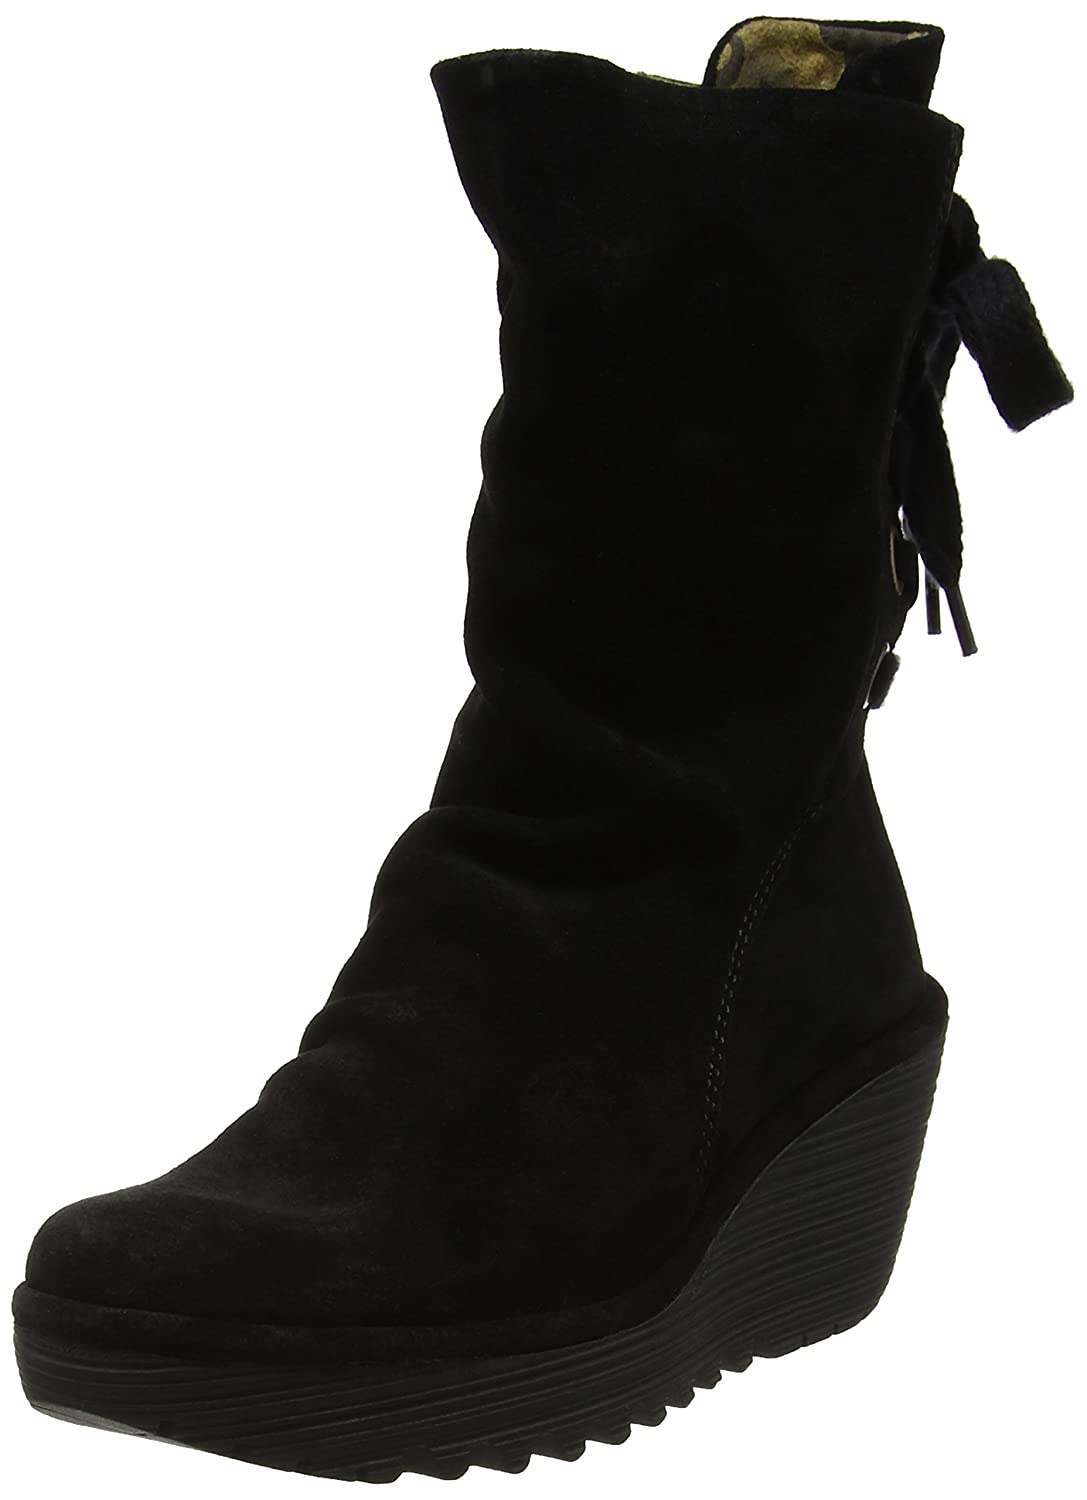 Fly London Yada, Botas para Mujer42 EU|Negro (Black)